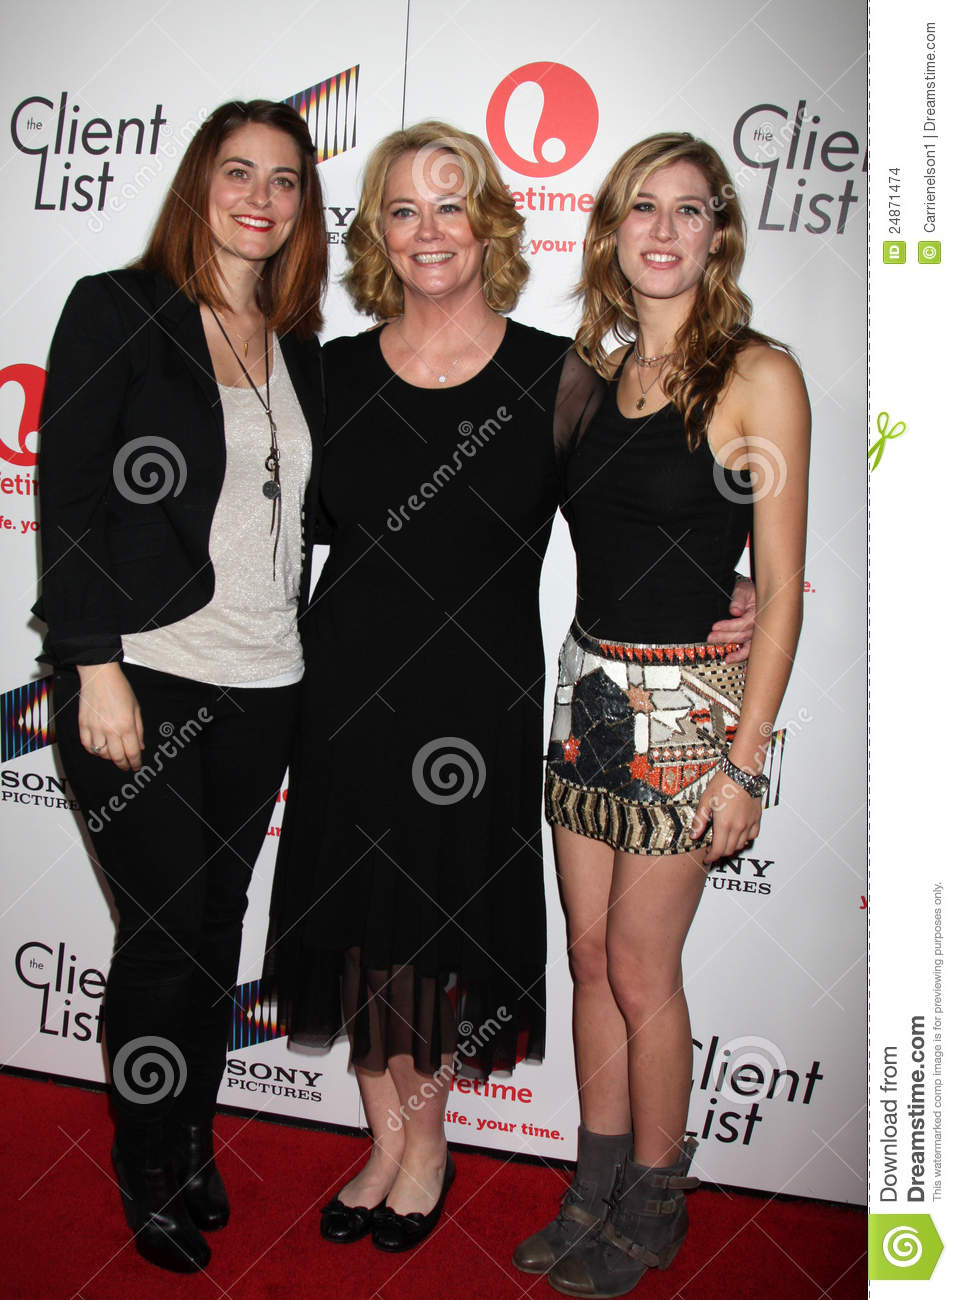 Cybill Shepherd Clementine Ford Editorial Stock Image